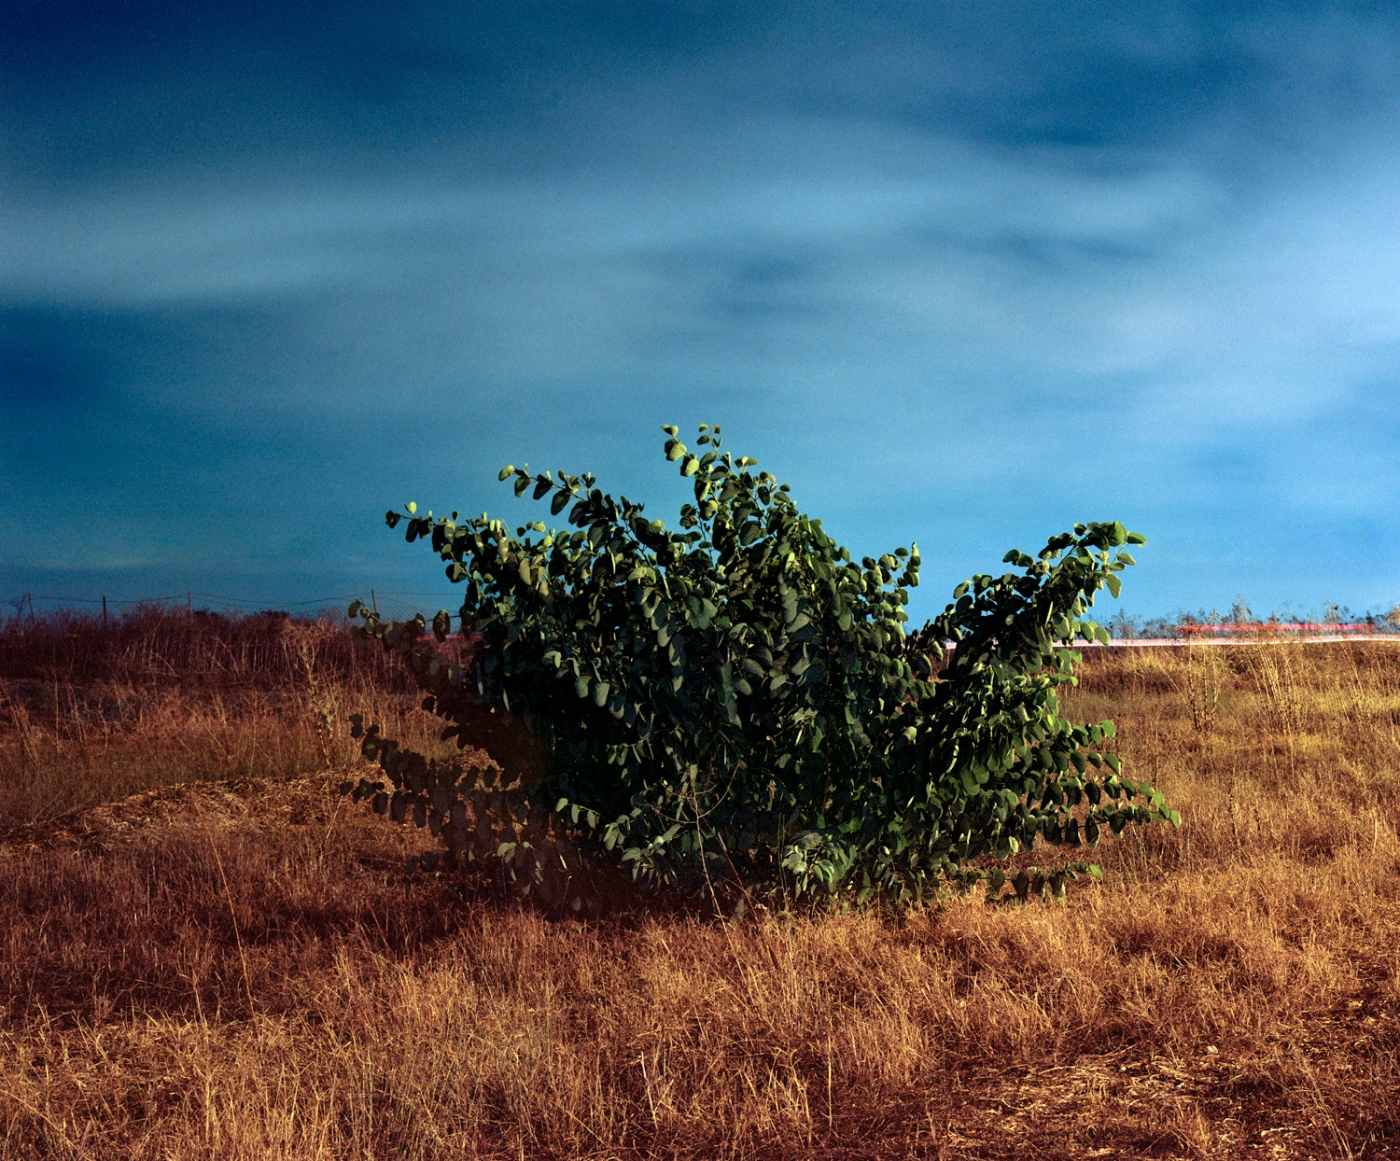 A photograph by Tal Ben Avi as published in Photo/Foto Magazine